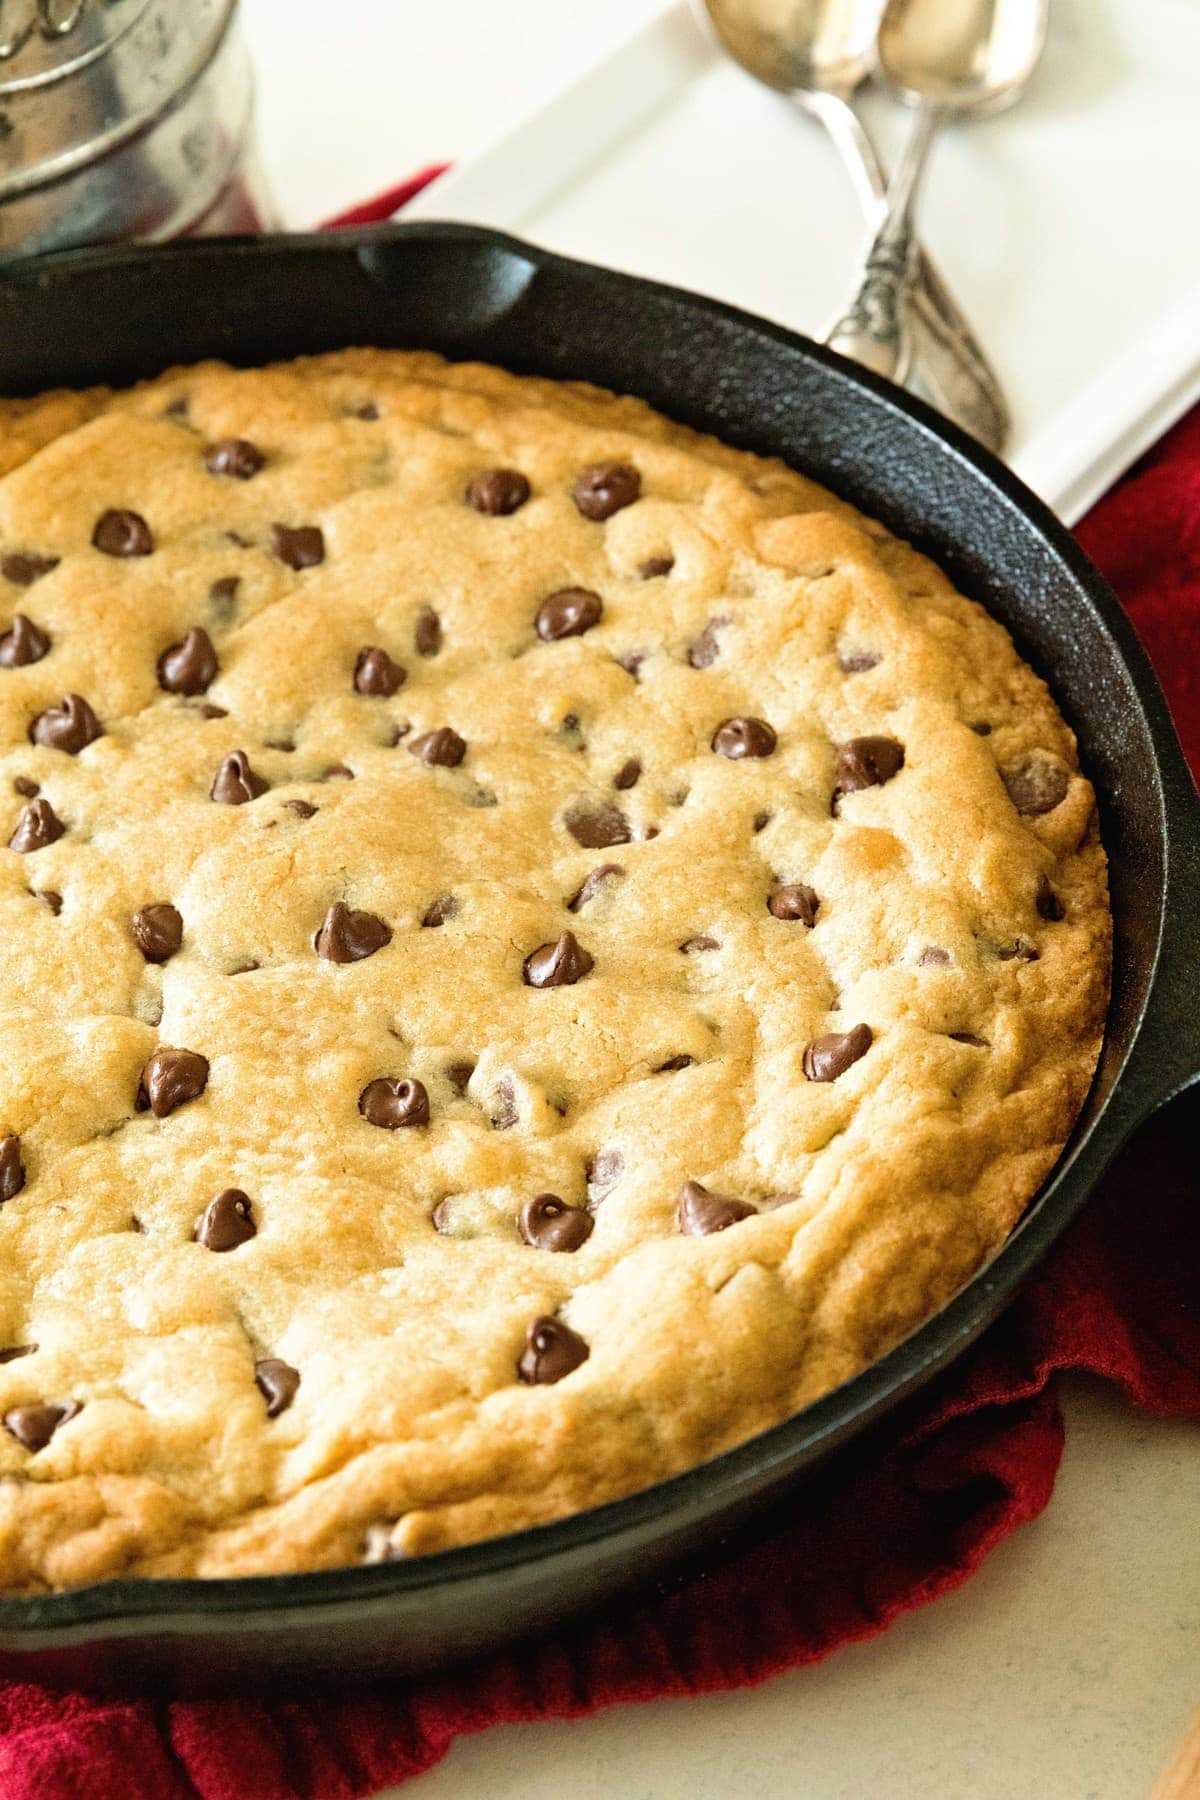 Chocolate Chip Skillet Cookie Recipe~ This Cast Iron Skillet Chocolate Chip Cookie Recipe is the BEST! Perfectly Gooey in the Middle and Crunchy on the Outside. Whip up a Batch Tonight to go With Your JACK'S Pizza!